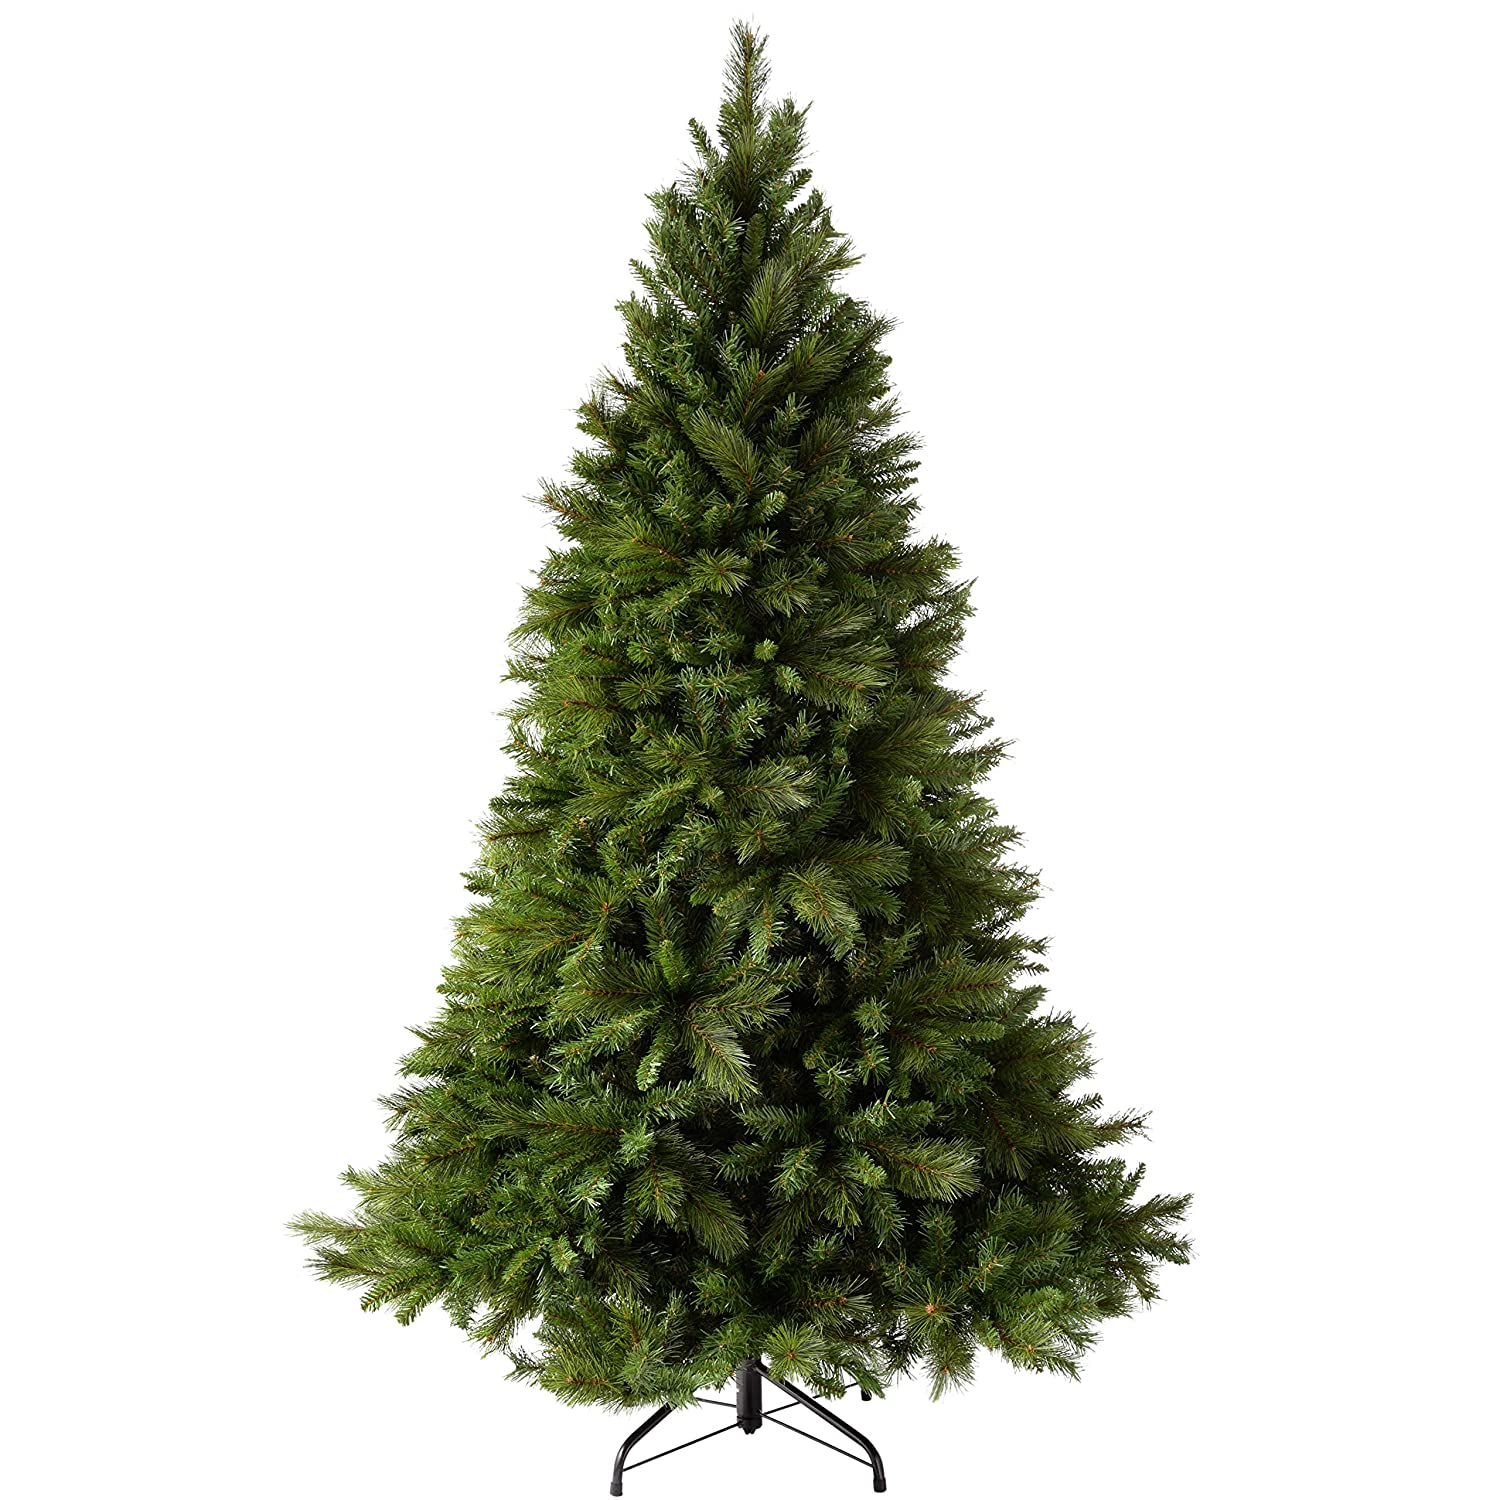 Werchristmas Victorian Pine Christmas Tree With Easy Build Hinged Branches,